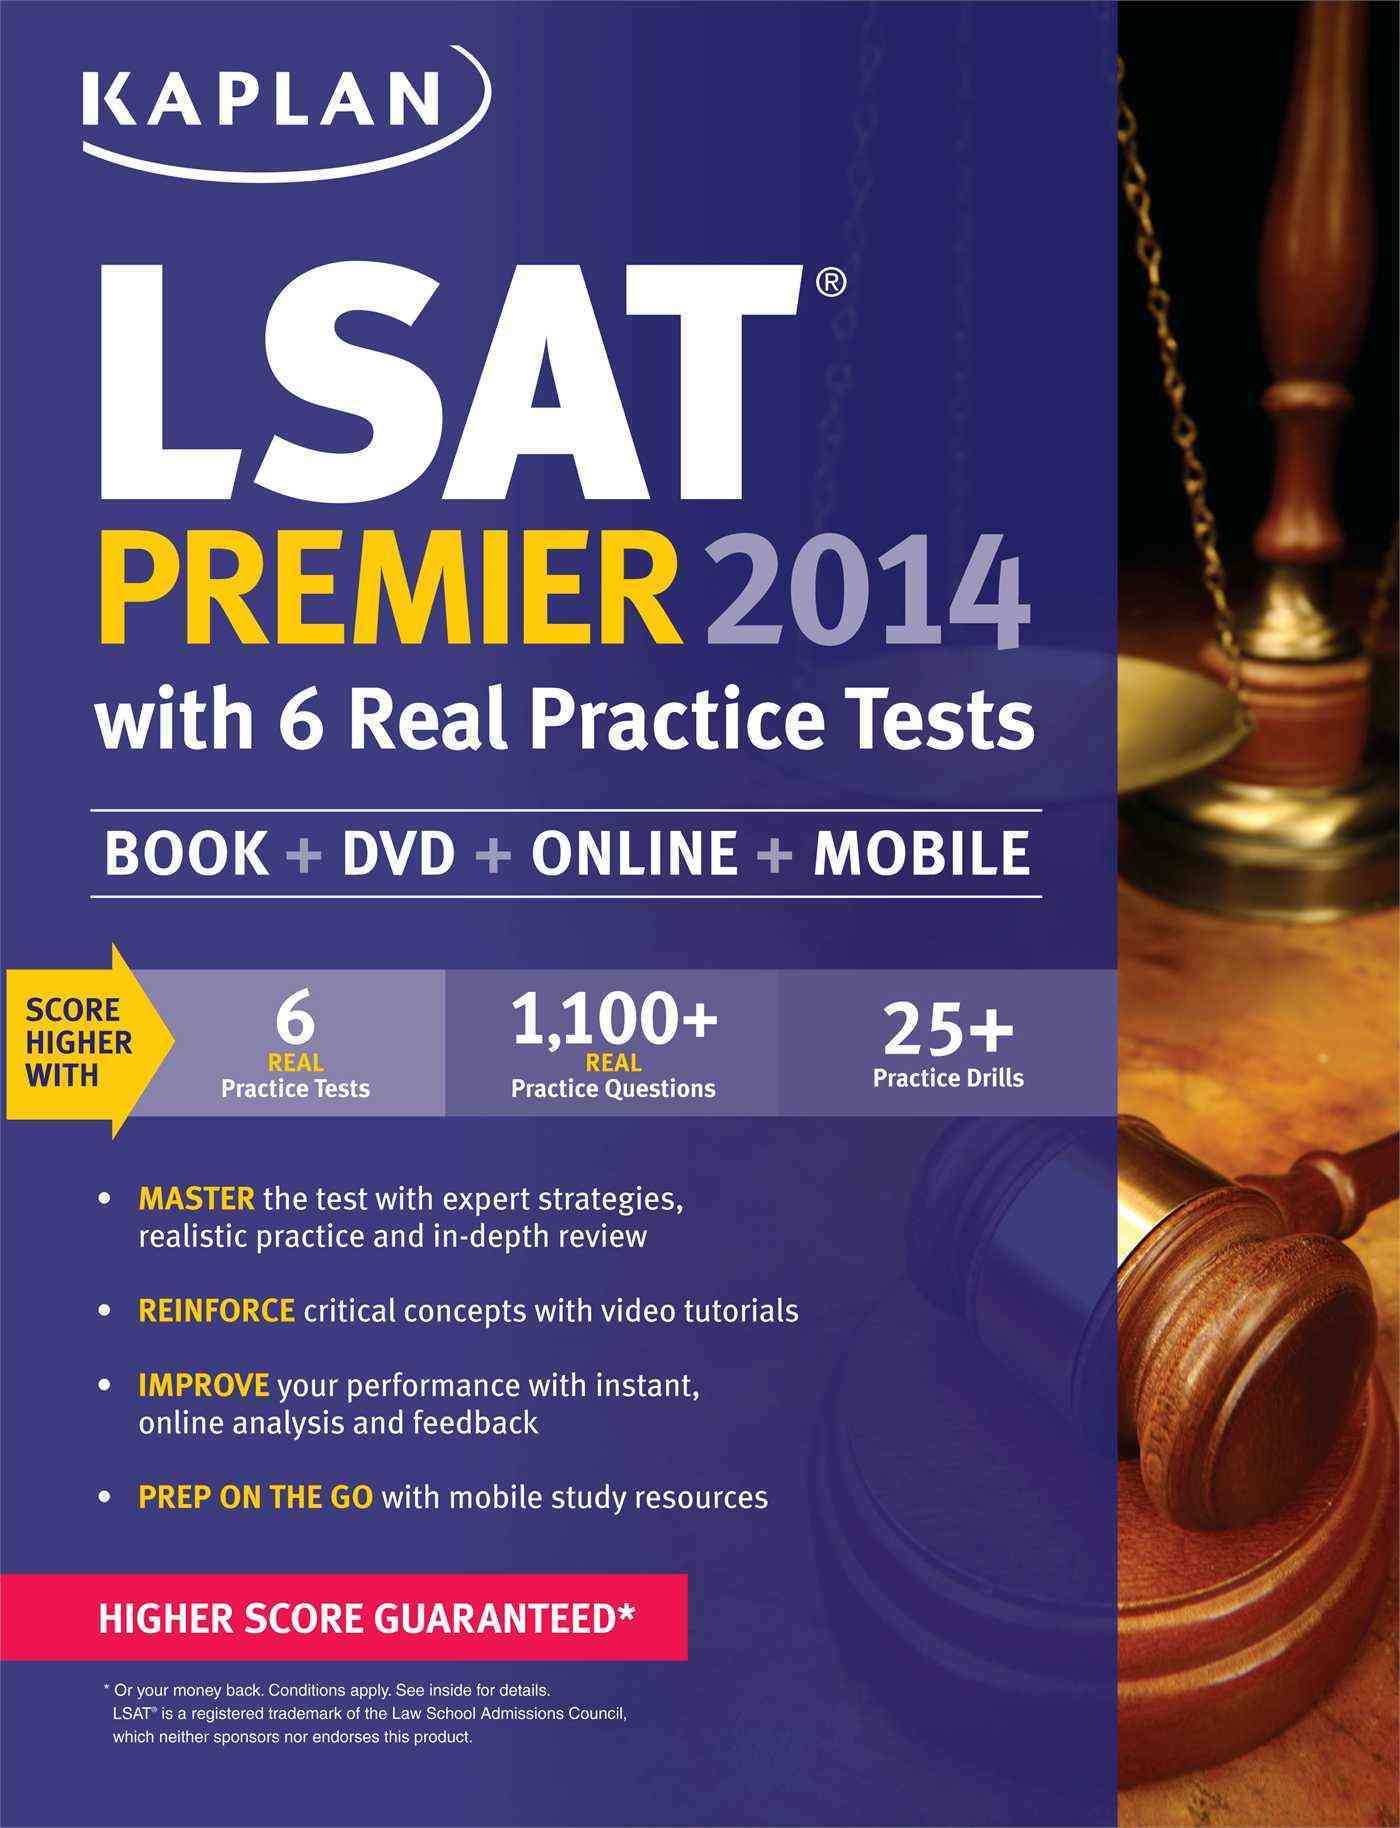 Kaplan LSAT Premier 2014: With 6 Real Practice Tests